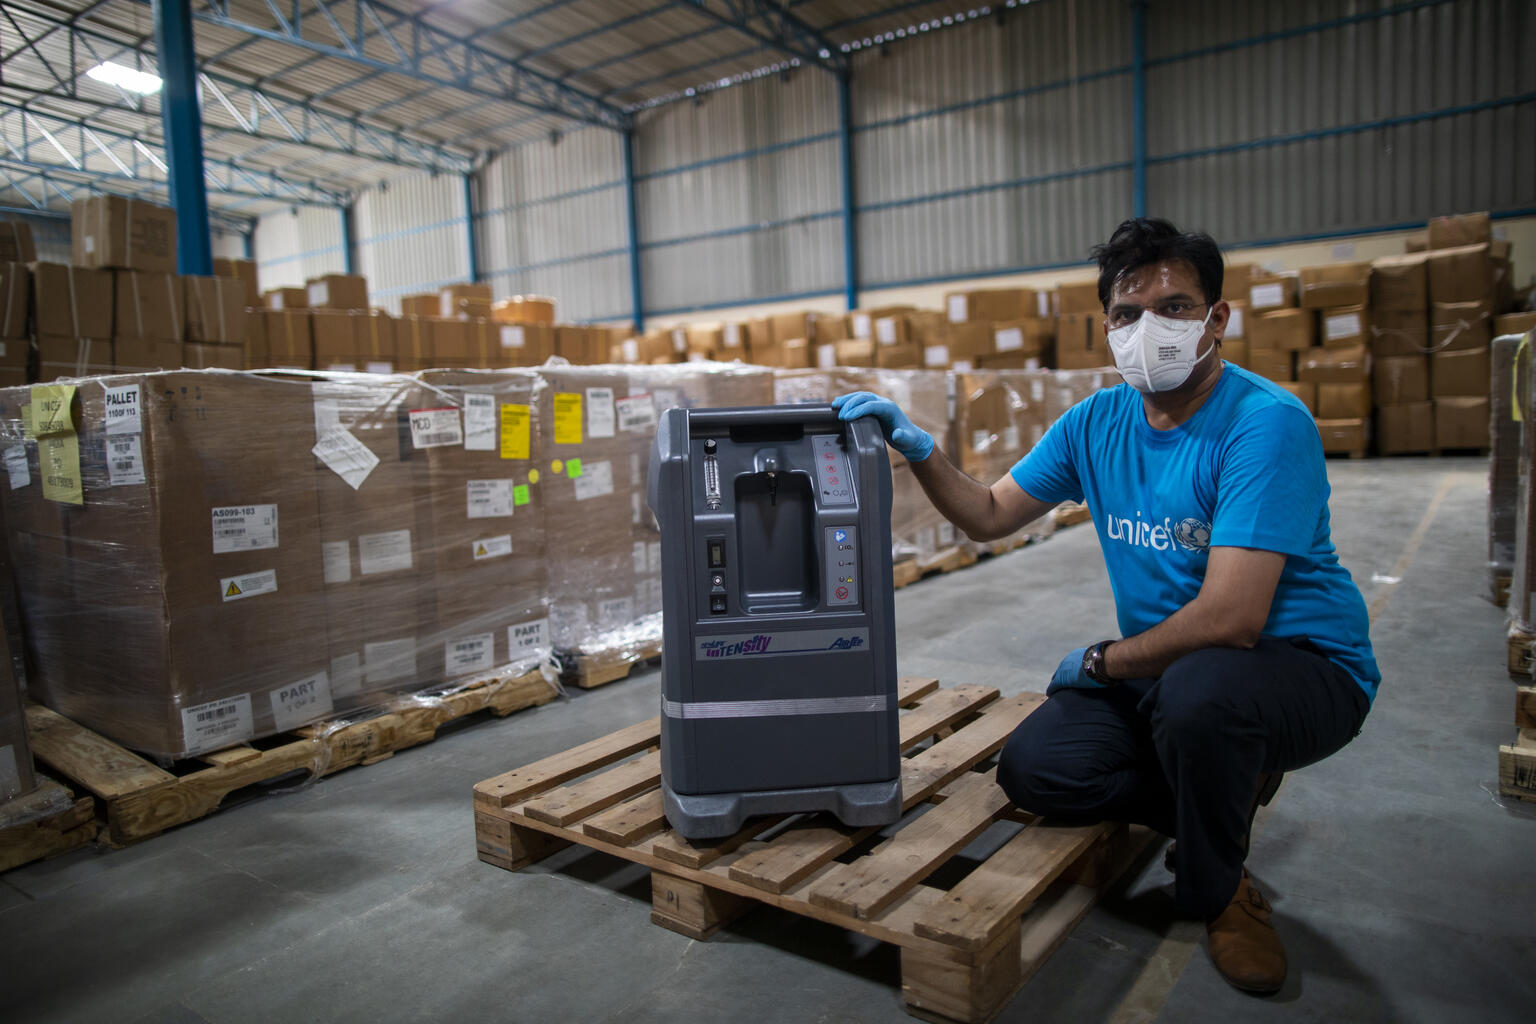 A man squats beside an oxygen concentrator in a warehouse.